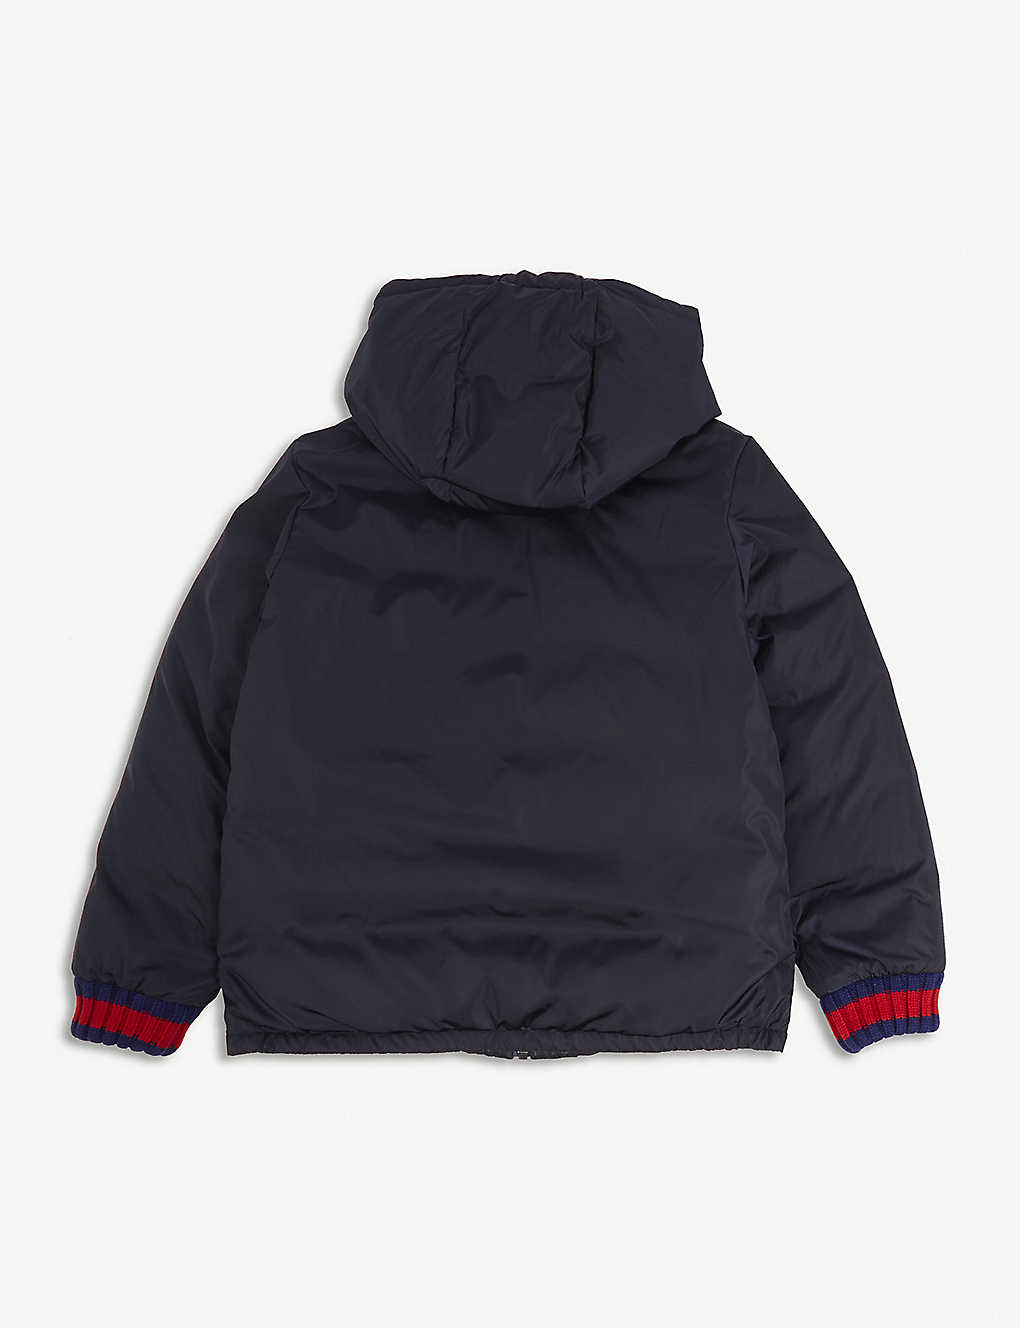 3a27085eaa8d5 GUCCI - Reversible  GG  jacquard quilted jacket 4-12 years ...